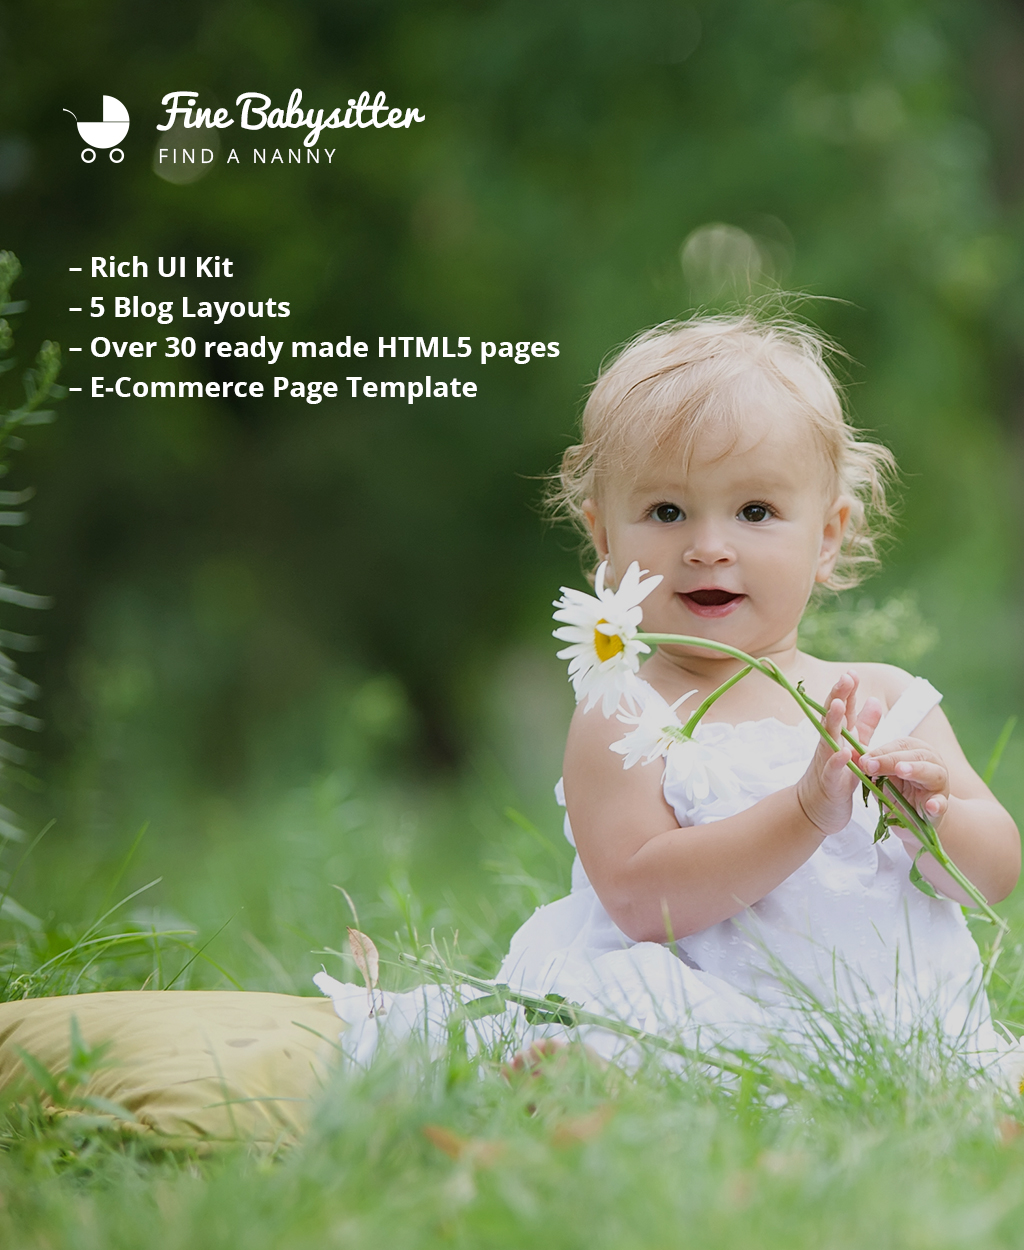 Fine Babysitter - Nanny Services Responsive Multipage Template Web №62238